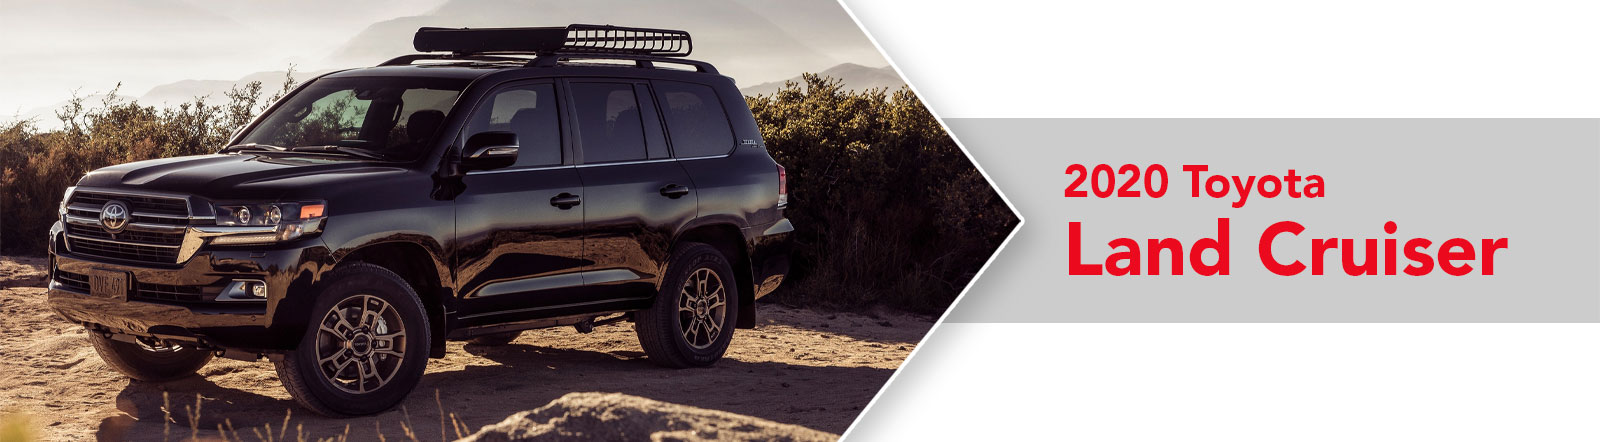 All-New 2020 Toyota Land Cruiser For Sale in Metairie, LA